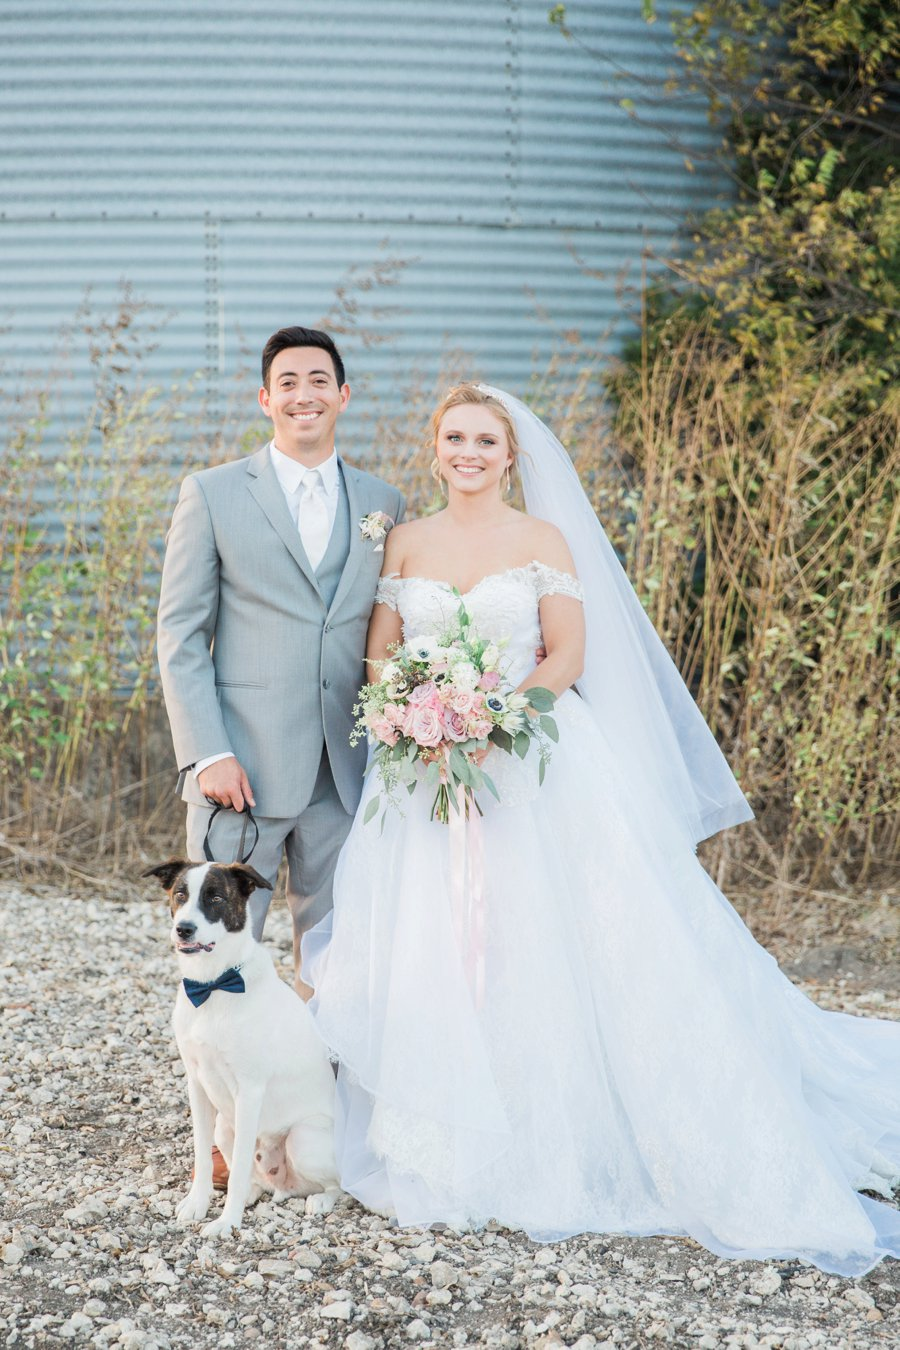 An Eclectic, Rustic Pink & Blue Texas Wedding Day | Every Last Detail